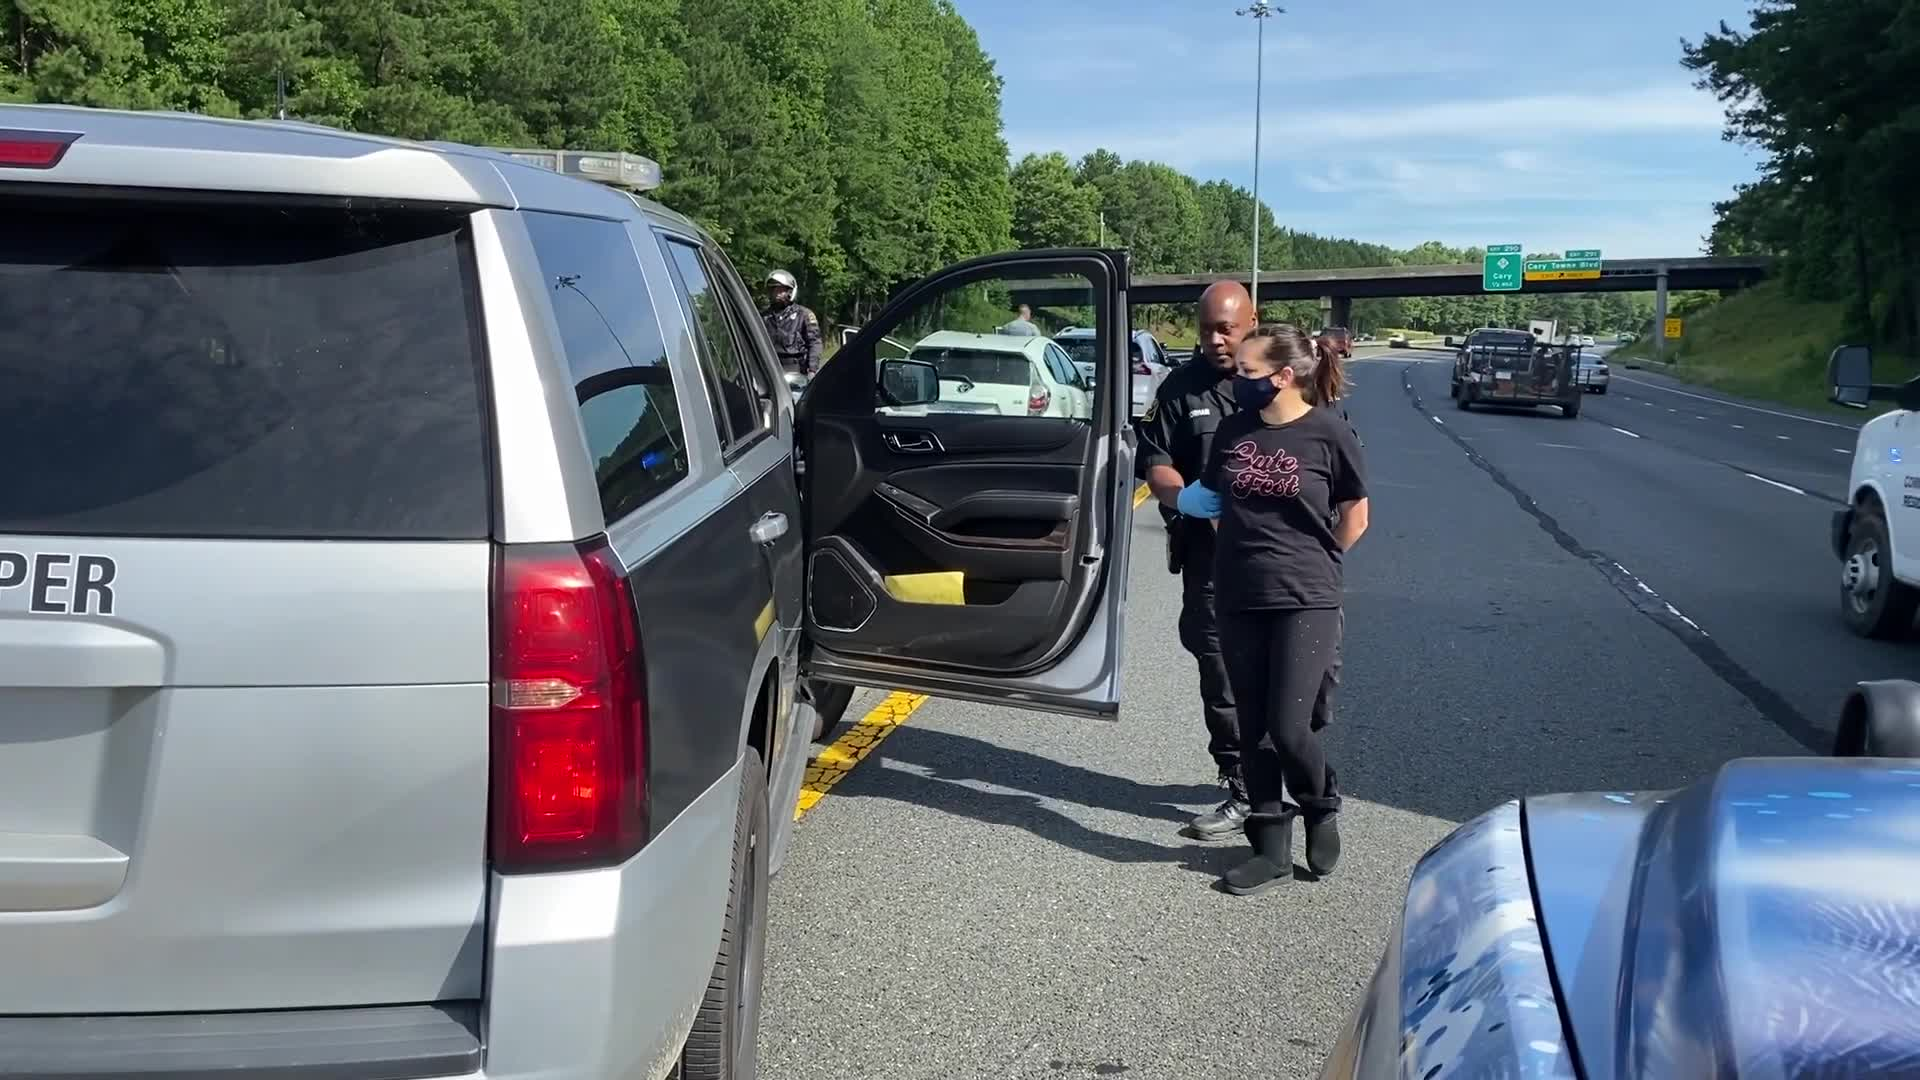 At least 2 detained after protest brings traffic to a crawl on I-40 in NC (WNCN)